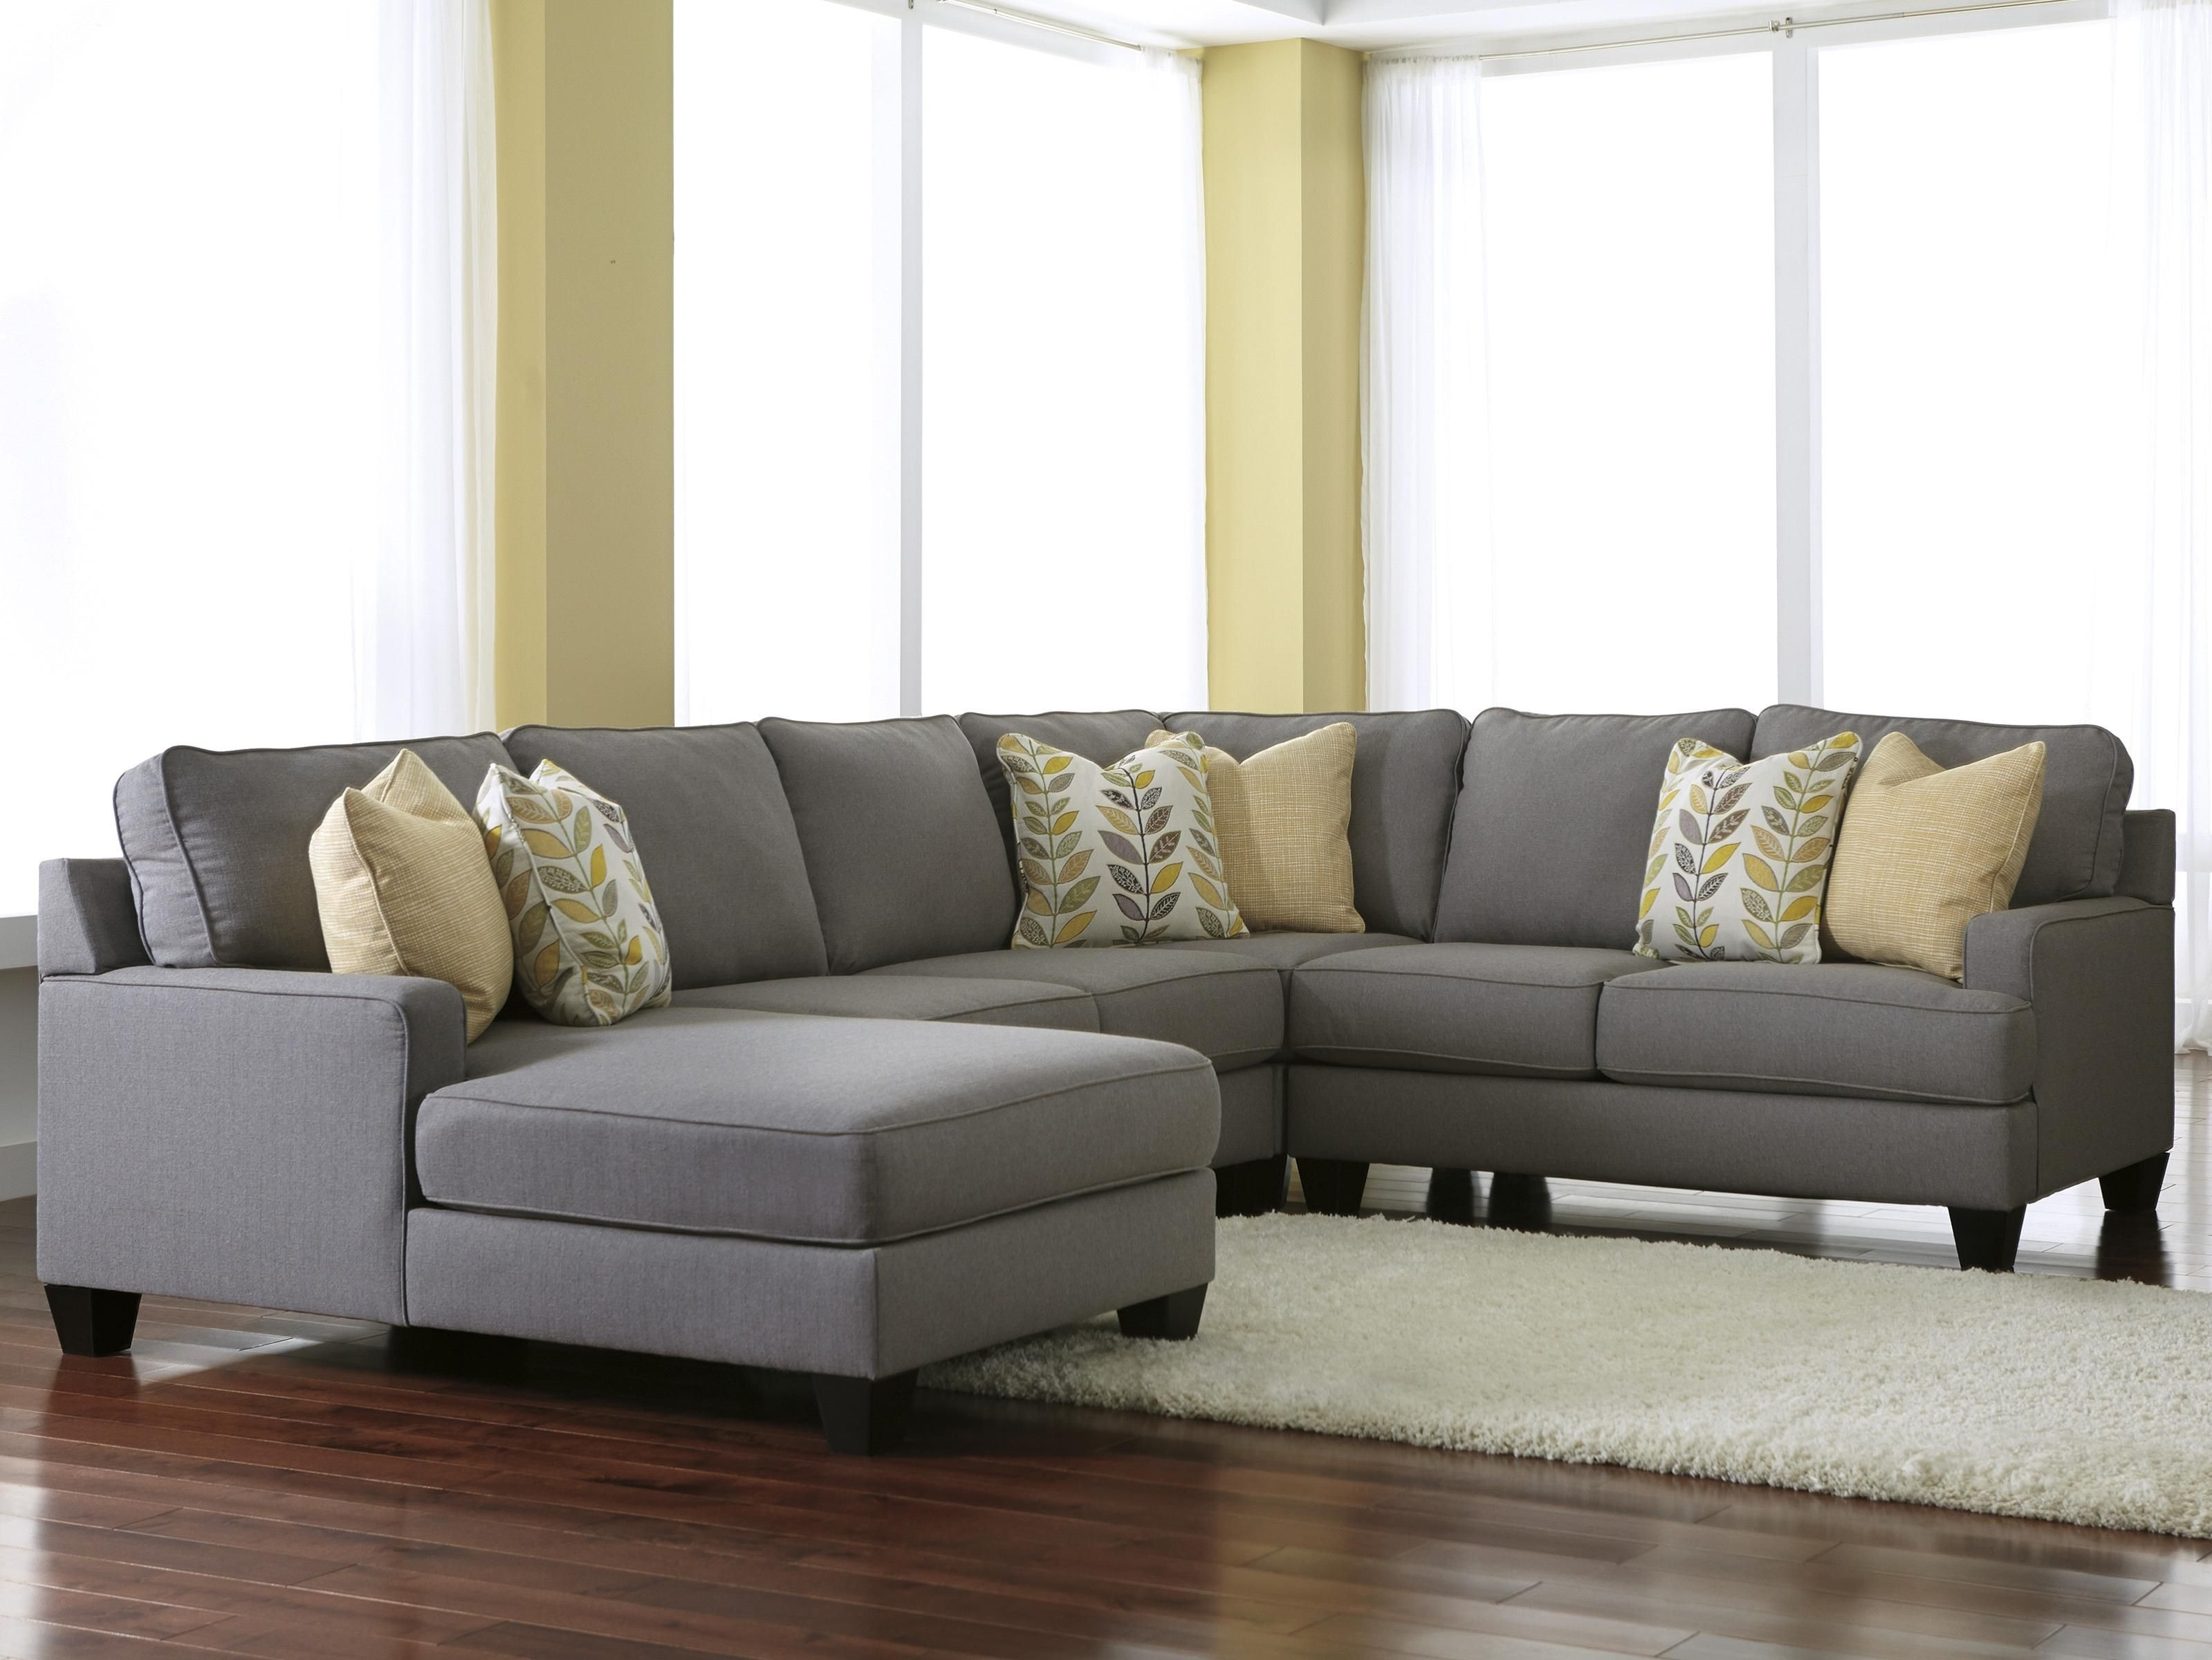 39 Collection Sectional Living Room Ideas Graphics | Living Room pertaining to Aquarius Light Grey 2 Piece Sectionals With Raf Chaise (Image 3 of 30)